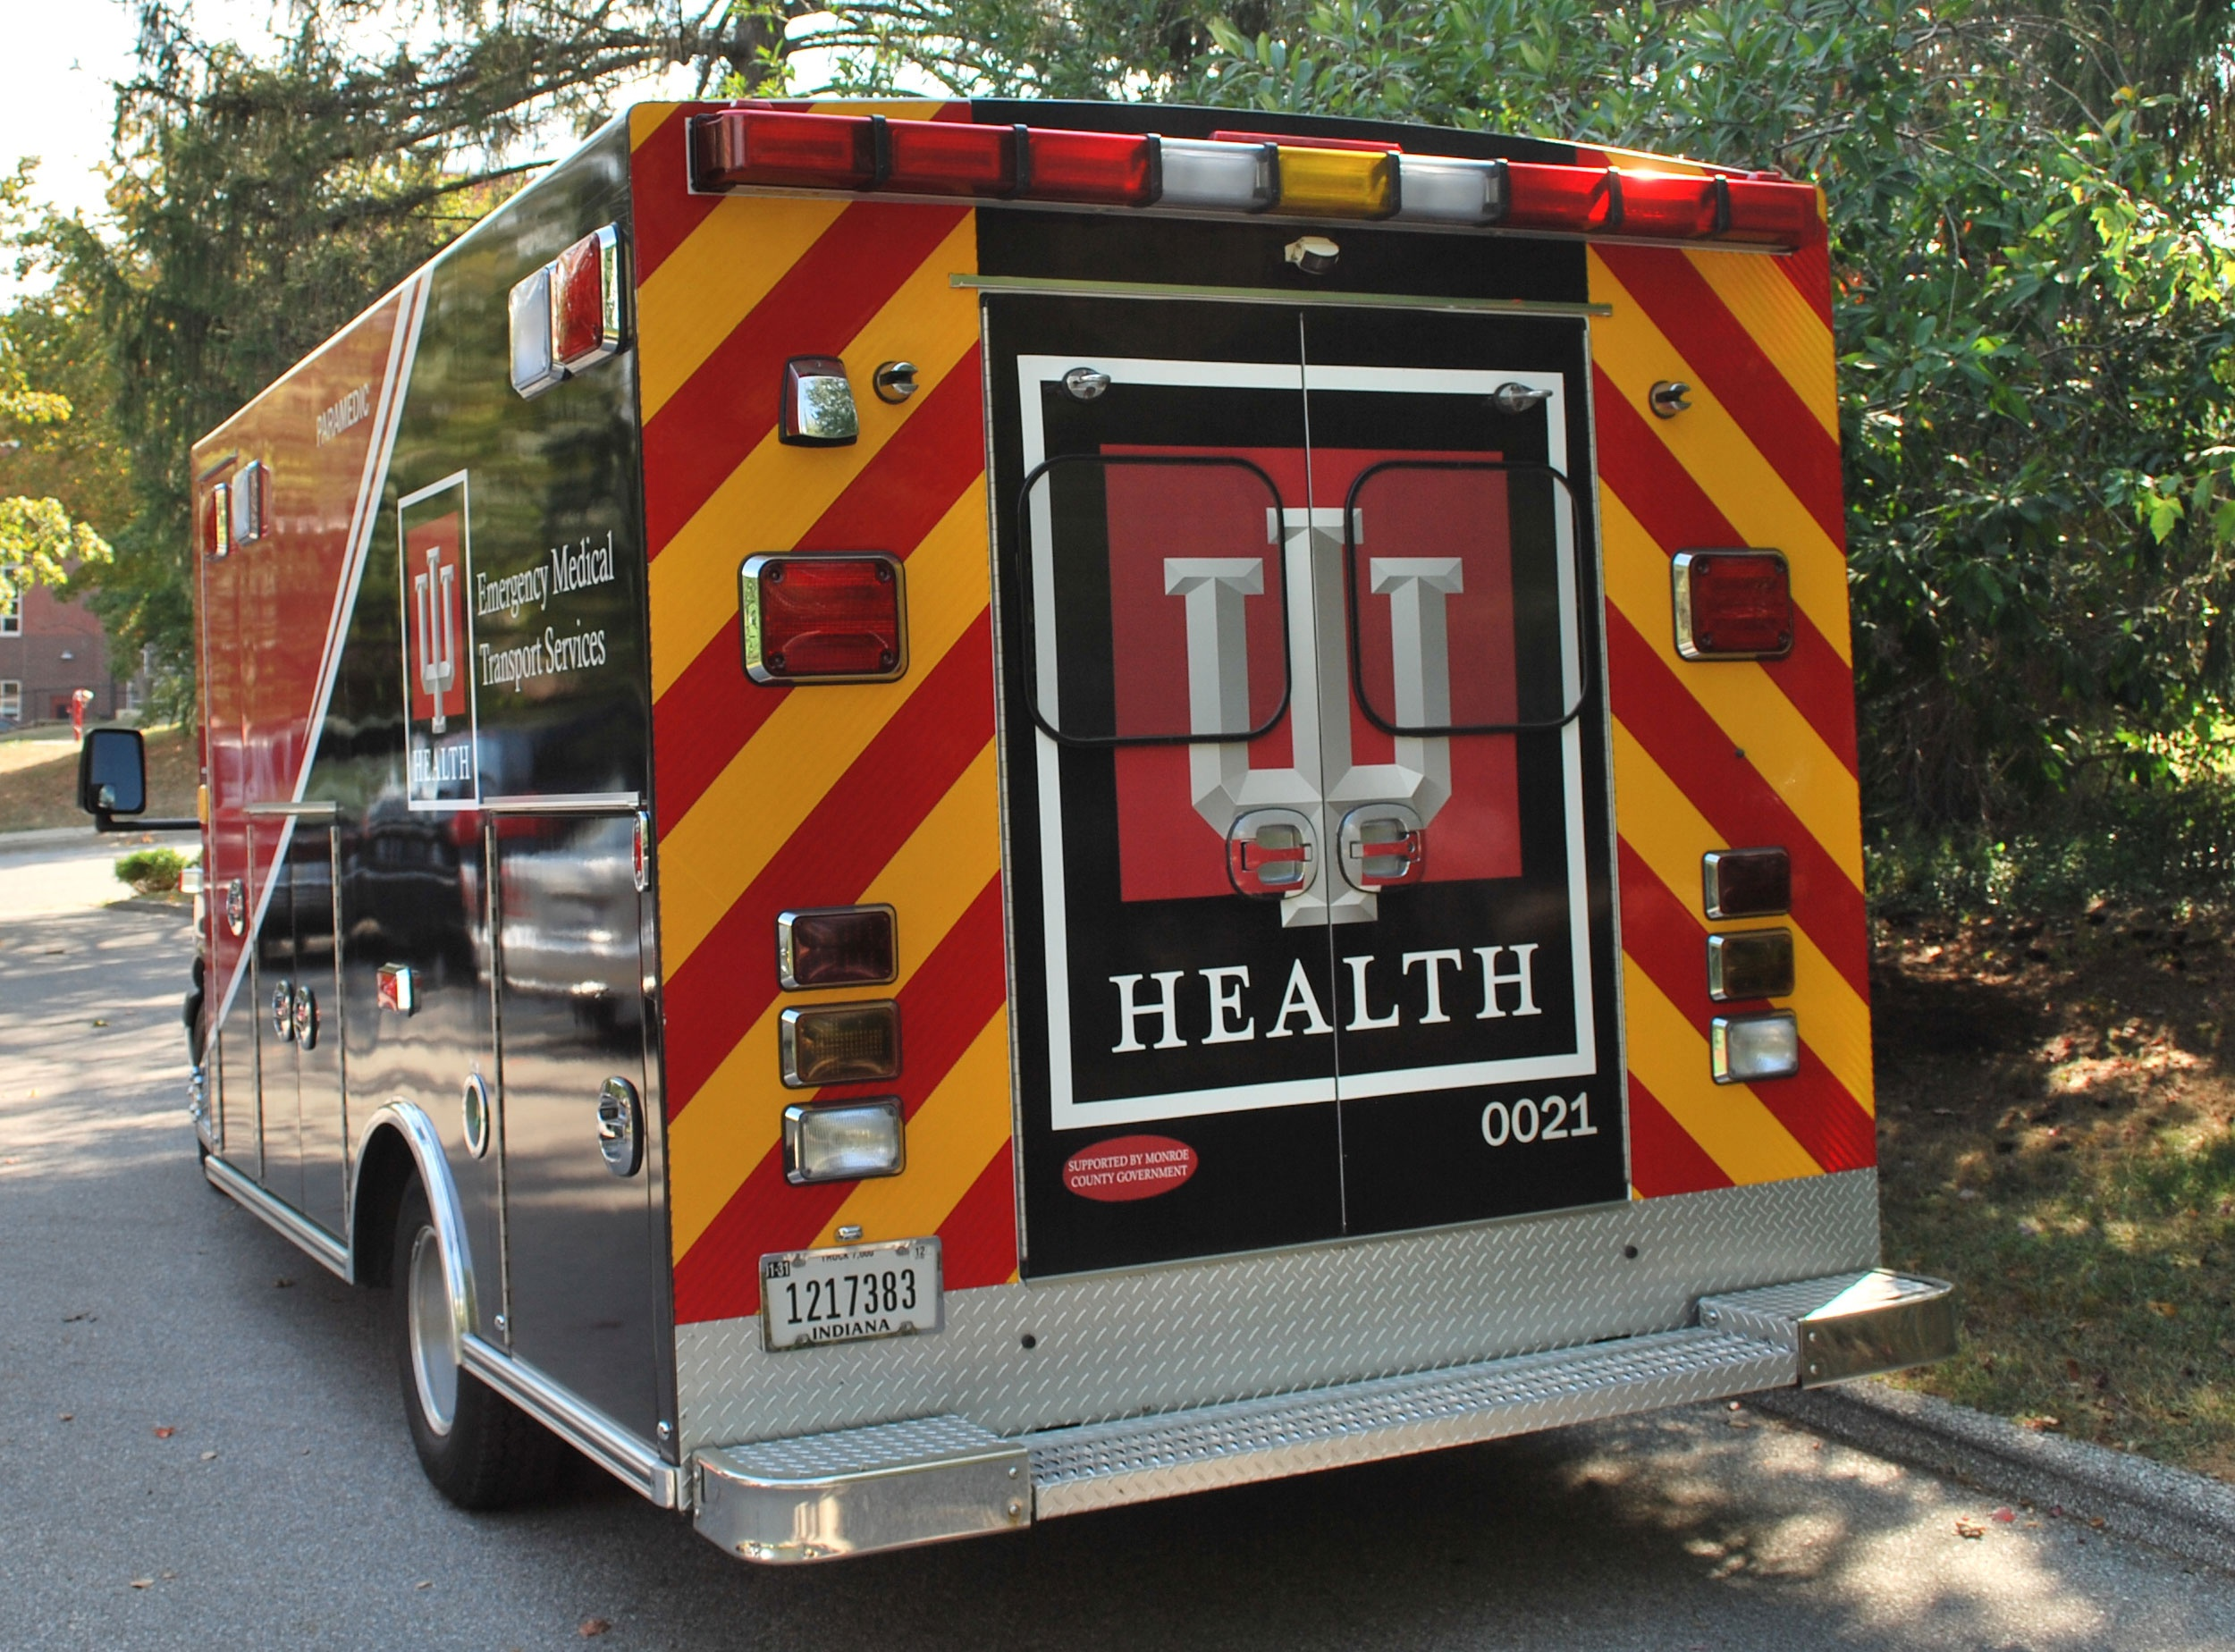 After a 1-year trial with a competitor, Bloomington Hospital EMS went back to Road Safety